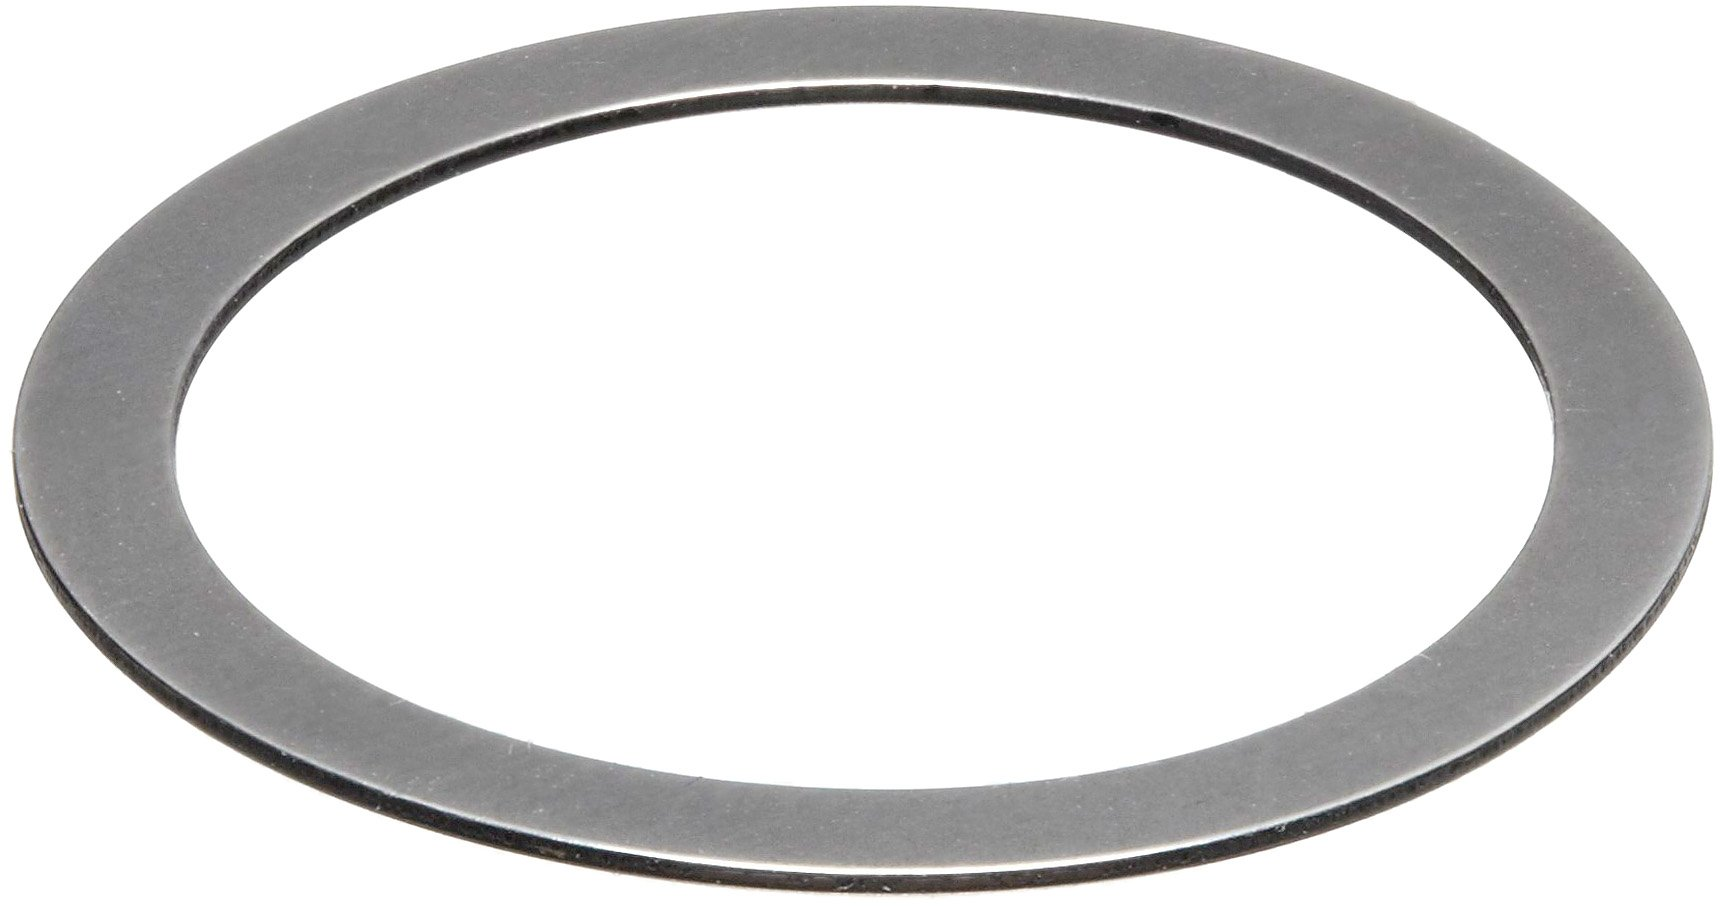 1075 Spring Steel Round Shim, Matte Finish, Spring Temper, AISI 1074/SAE 1074/AMS 5120H/QQ-S-700, 0.015'' Thickness, 0.595'' ID, 0.749'' OD (Pack of 50) by Small Parts (Image #1)